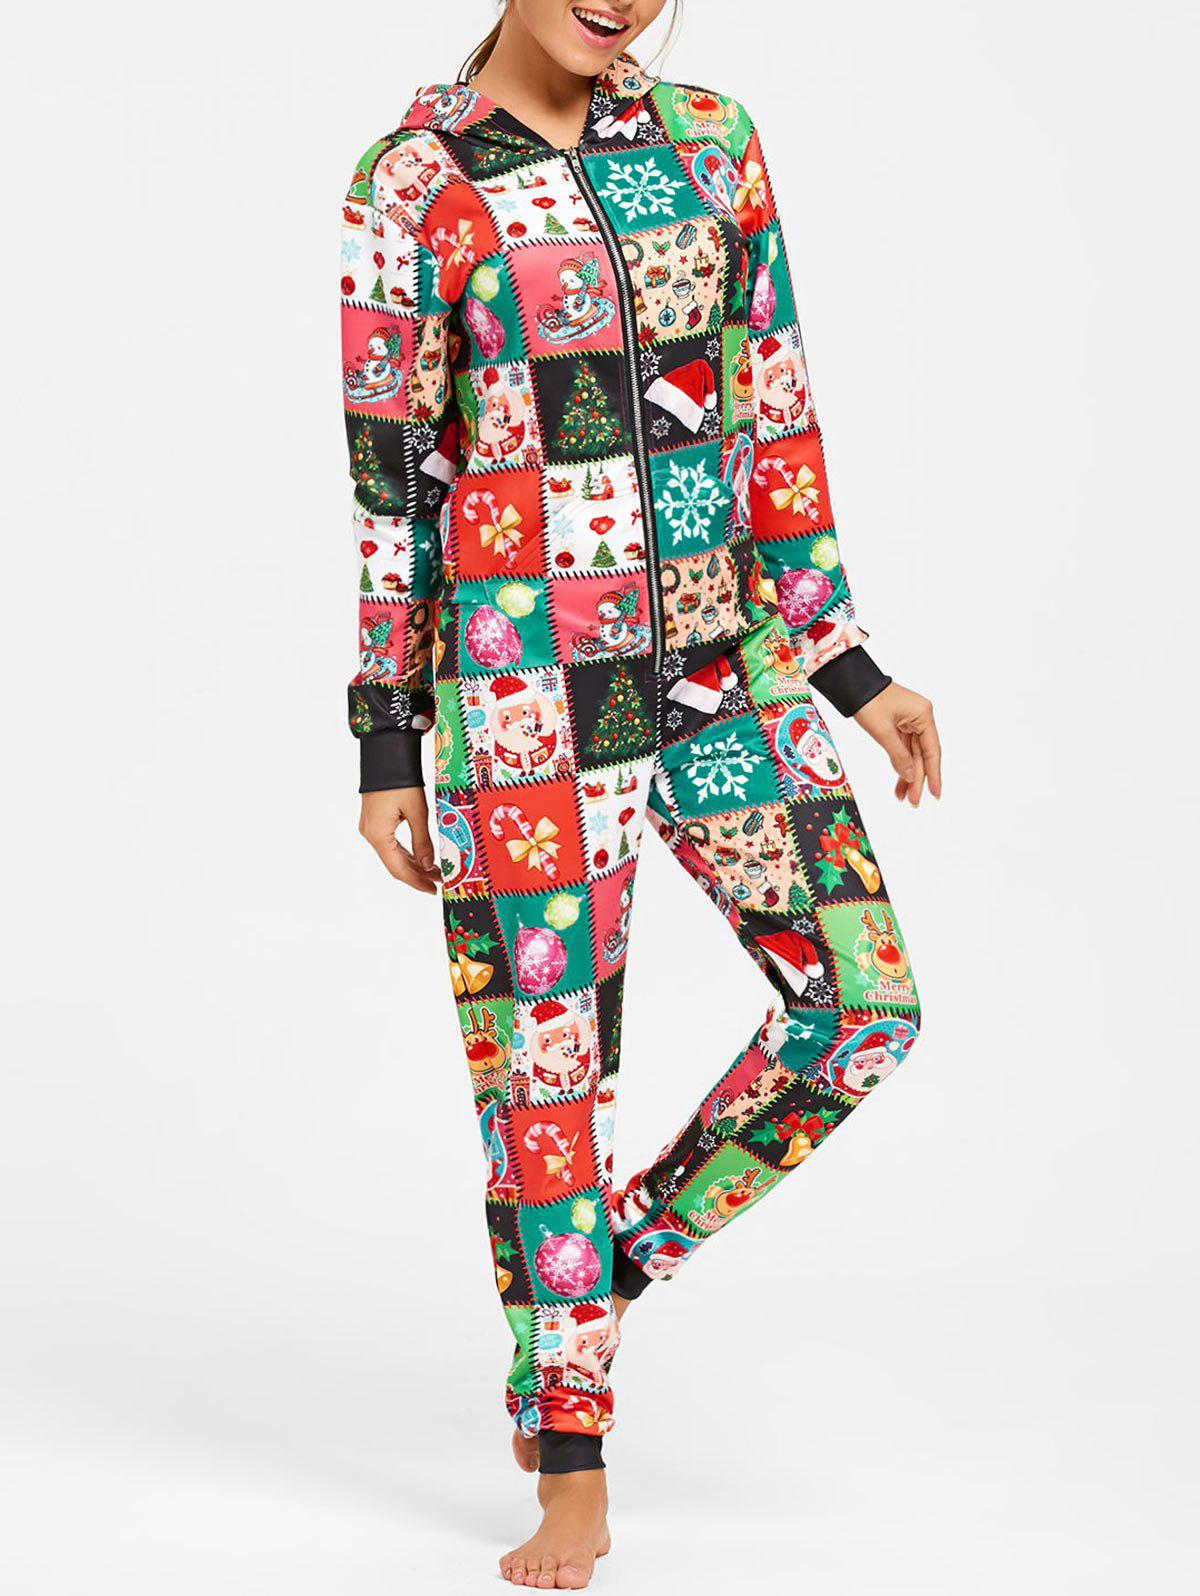 New Hooded One Piece Christmas Pajama